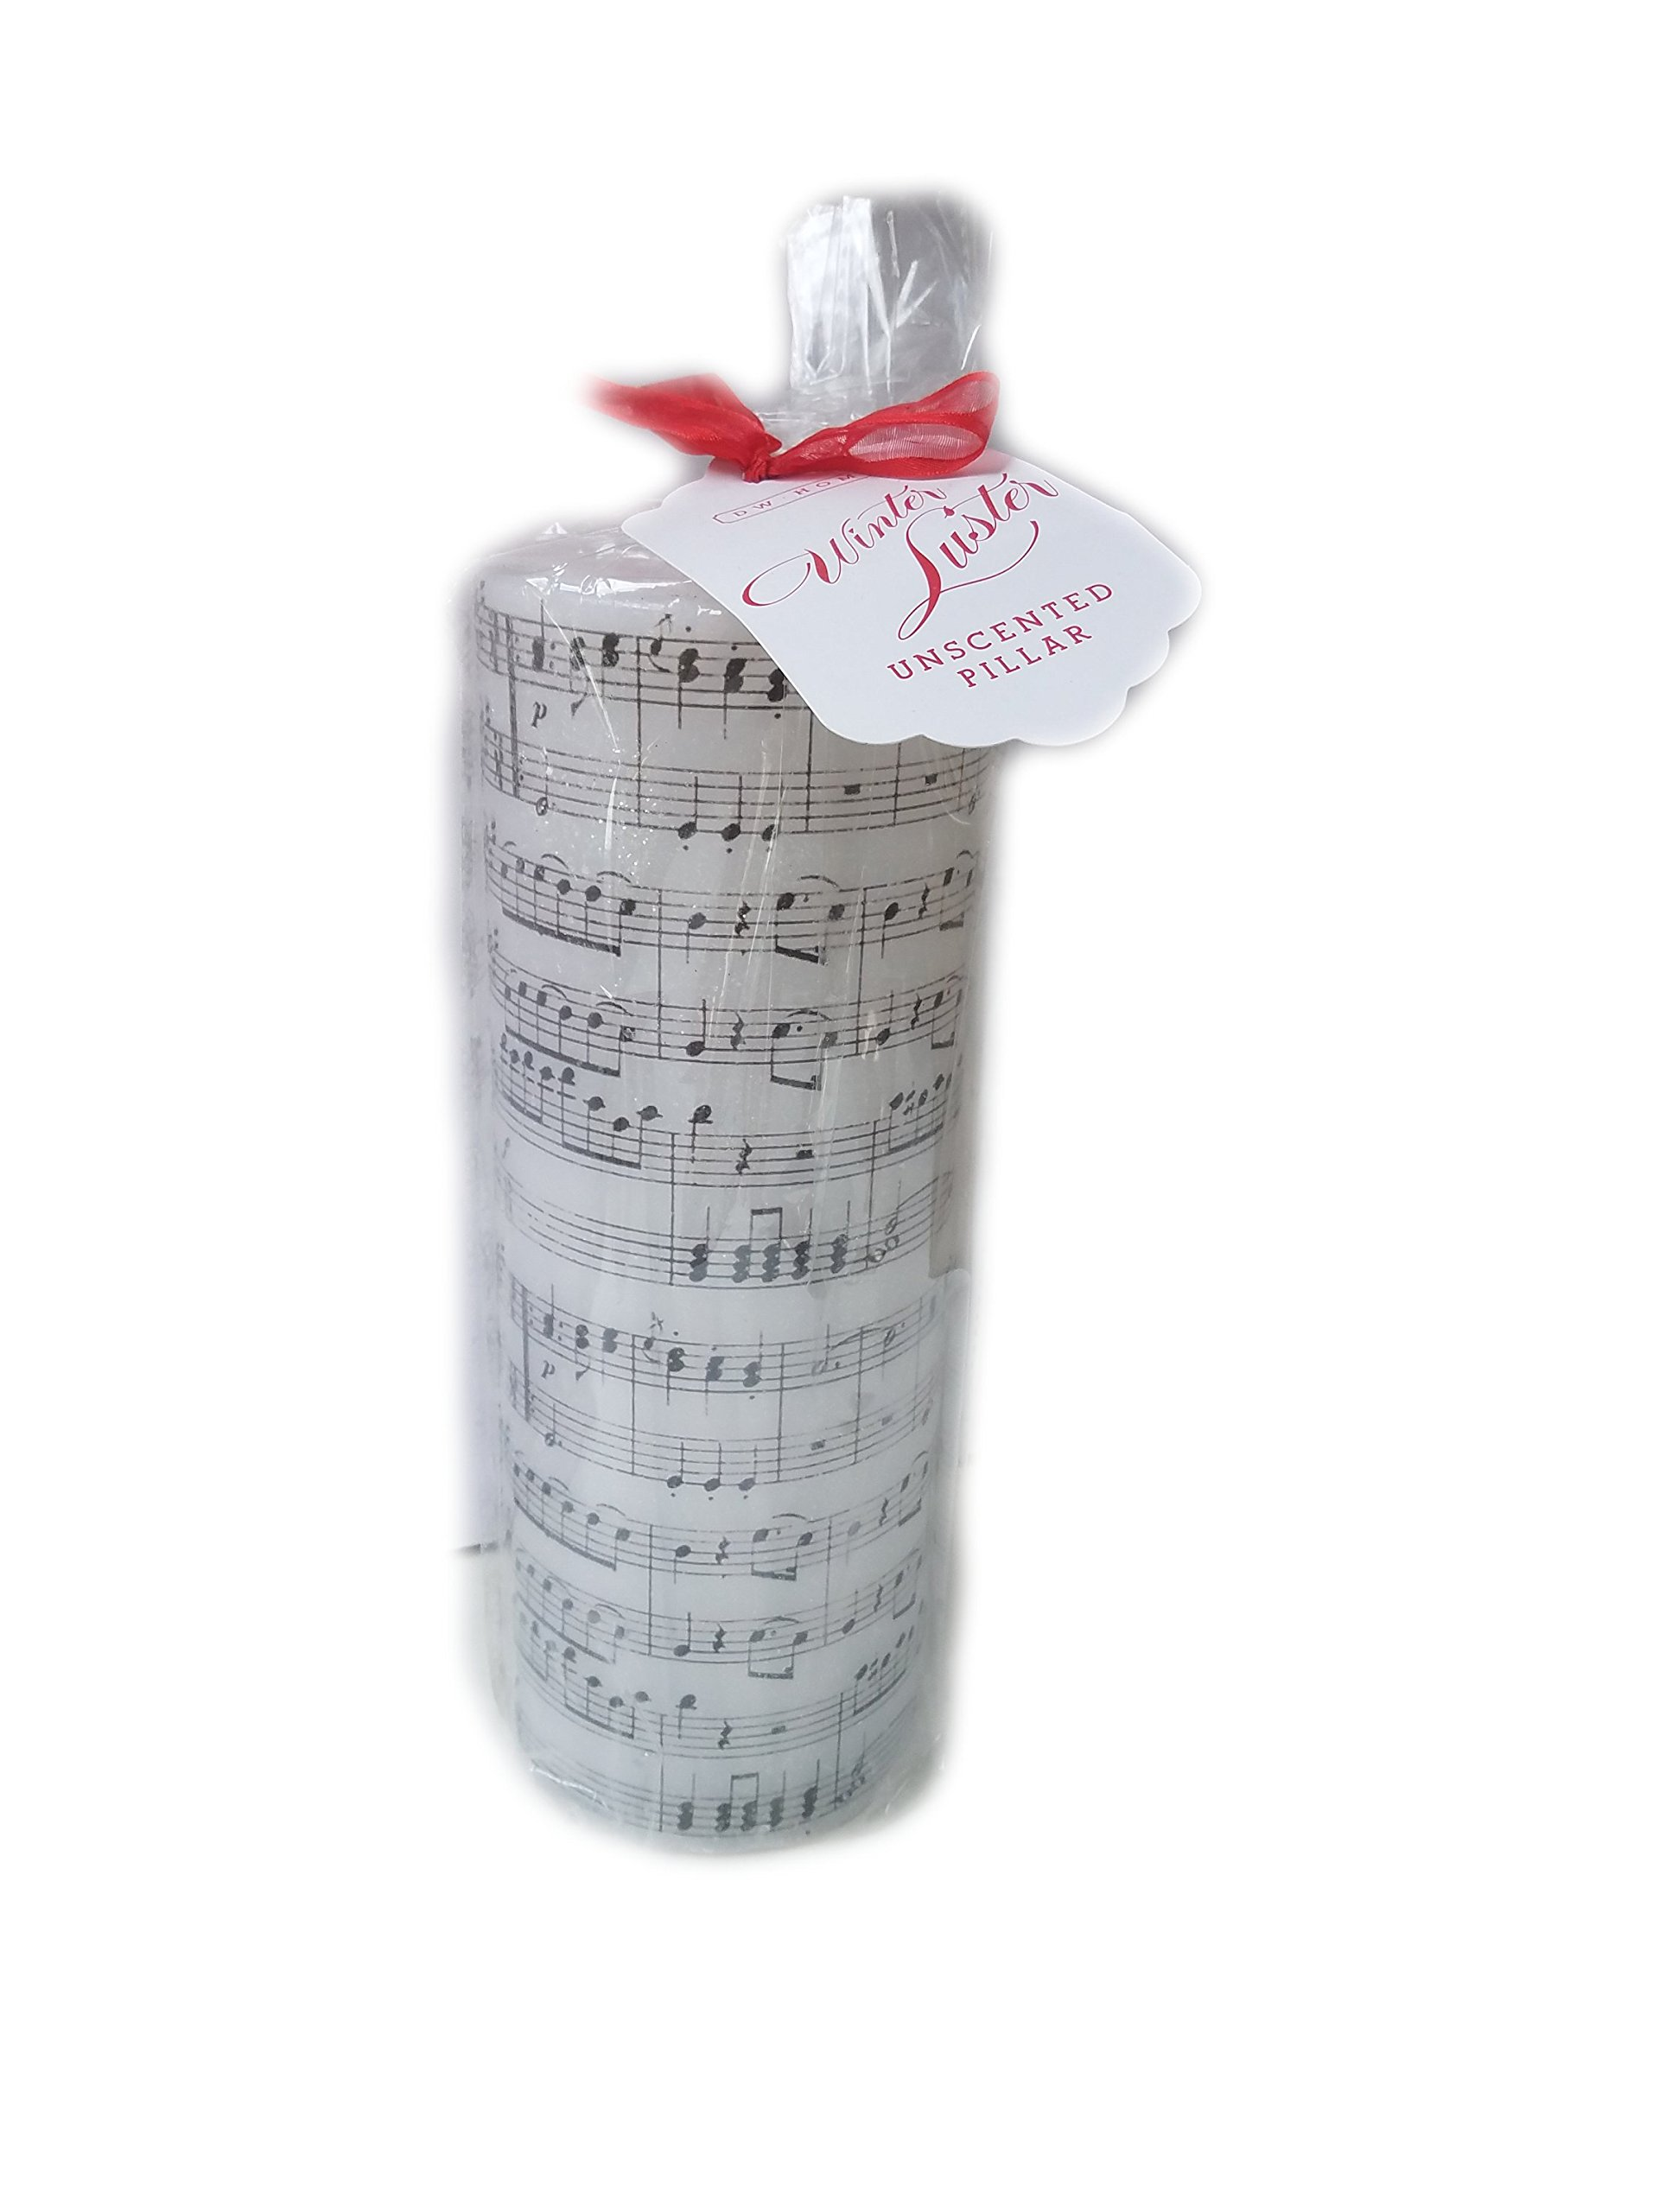 DW Home Music Notes Winter Luster Unscented Pillar Decorative Cylinder Christmas Candle 10'' High x 3.75'' Wide